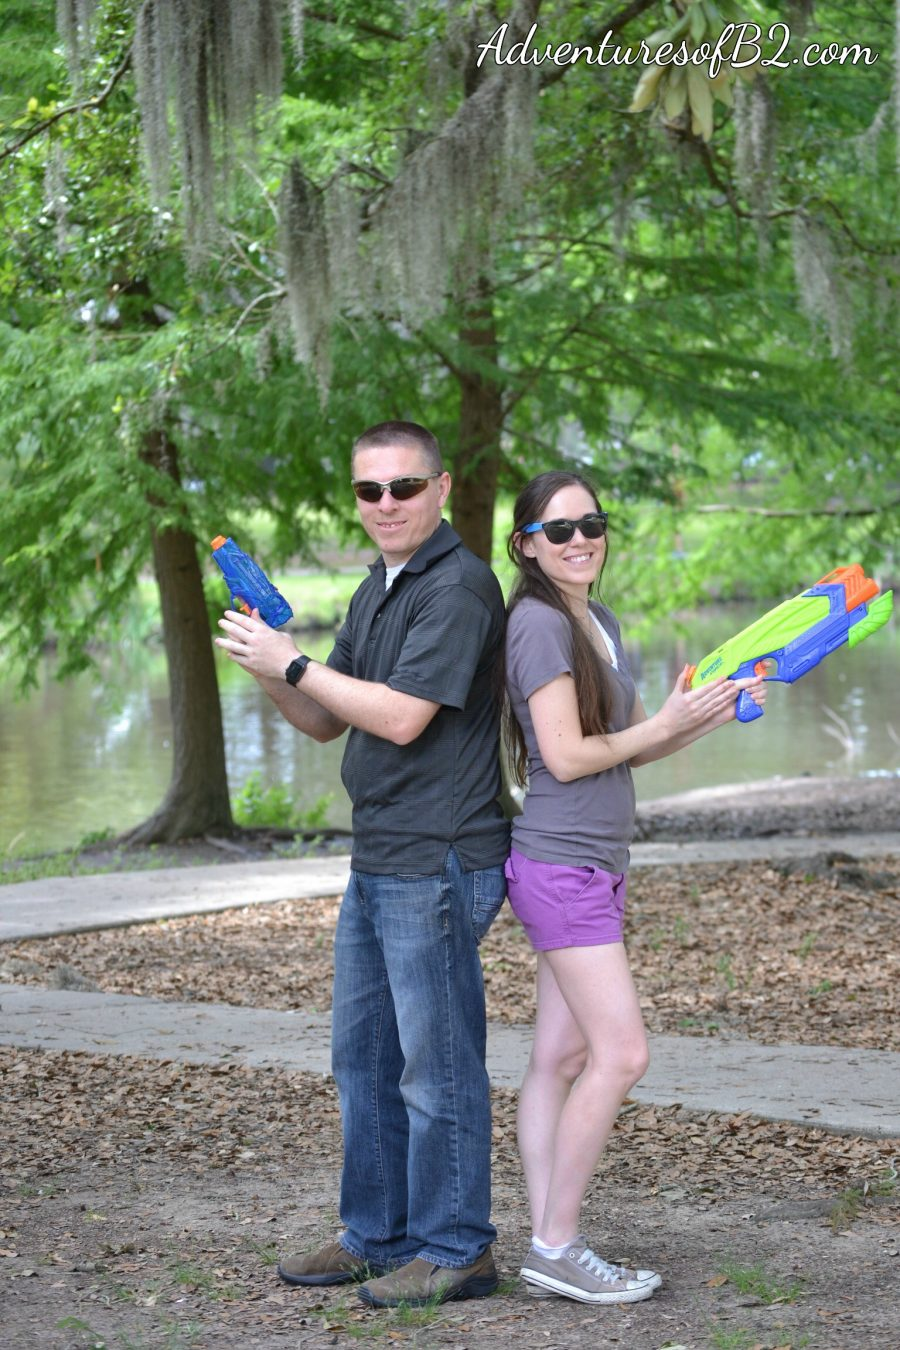 Water Gun Fight Photoshoot